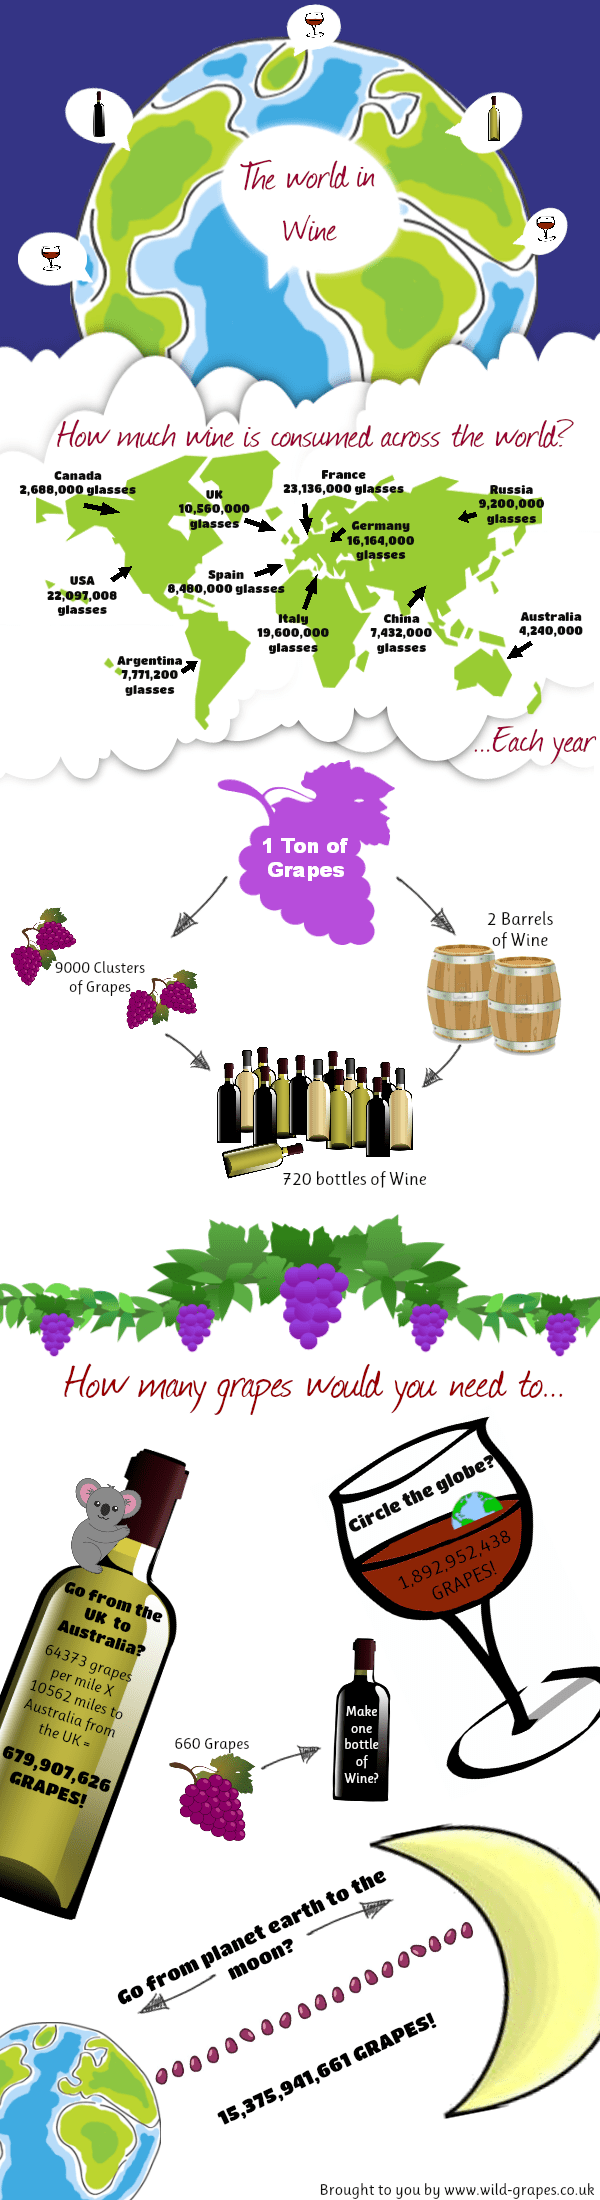 the world in wine